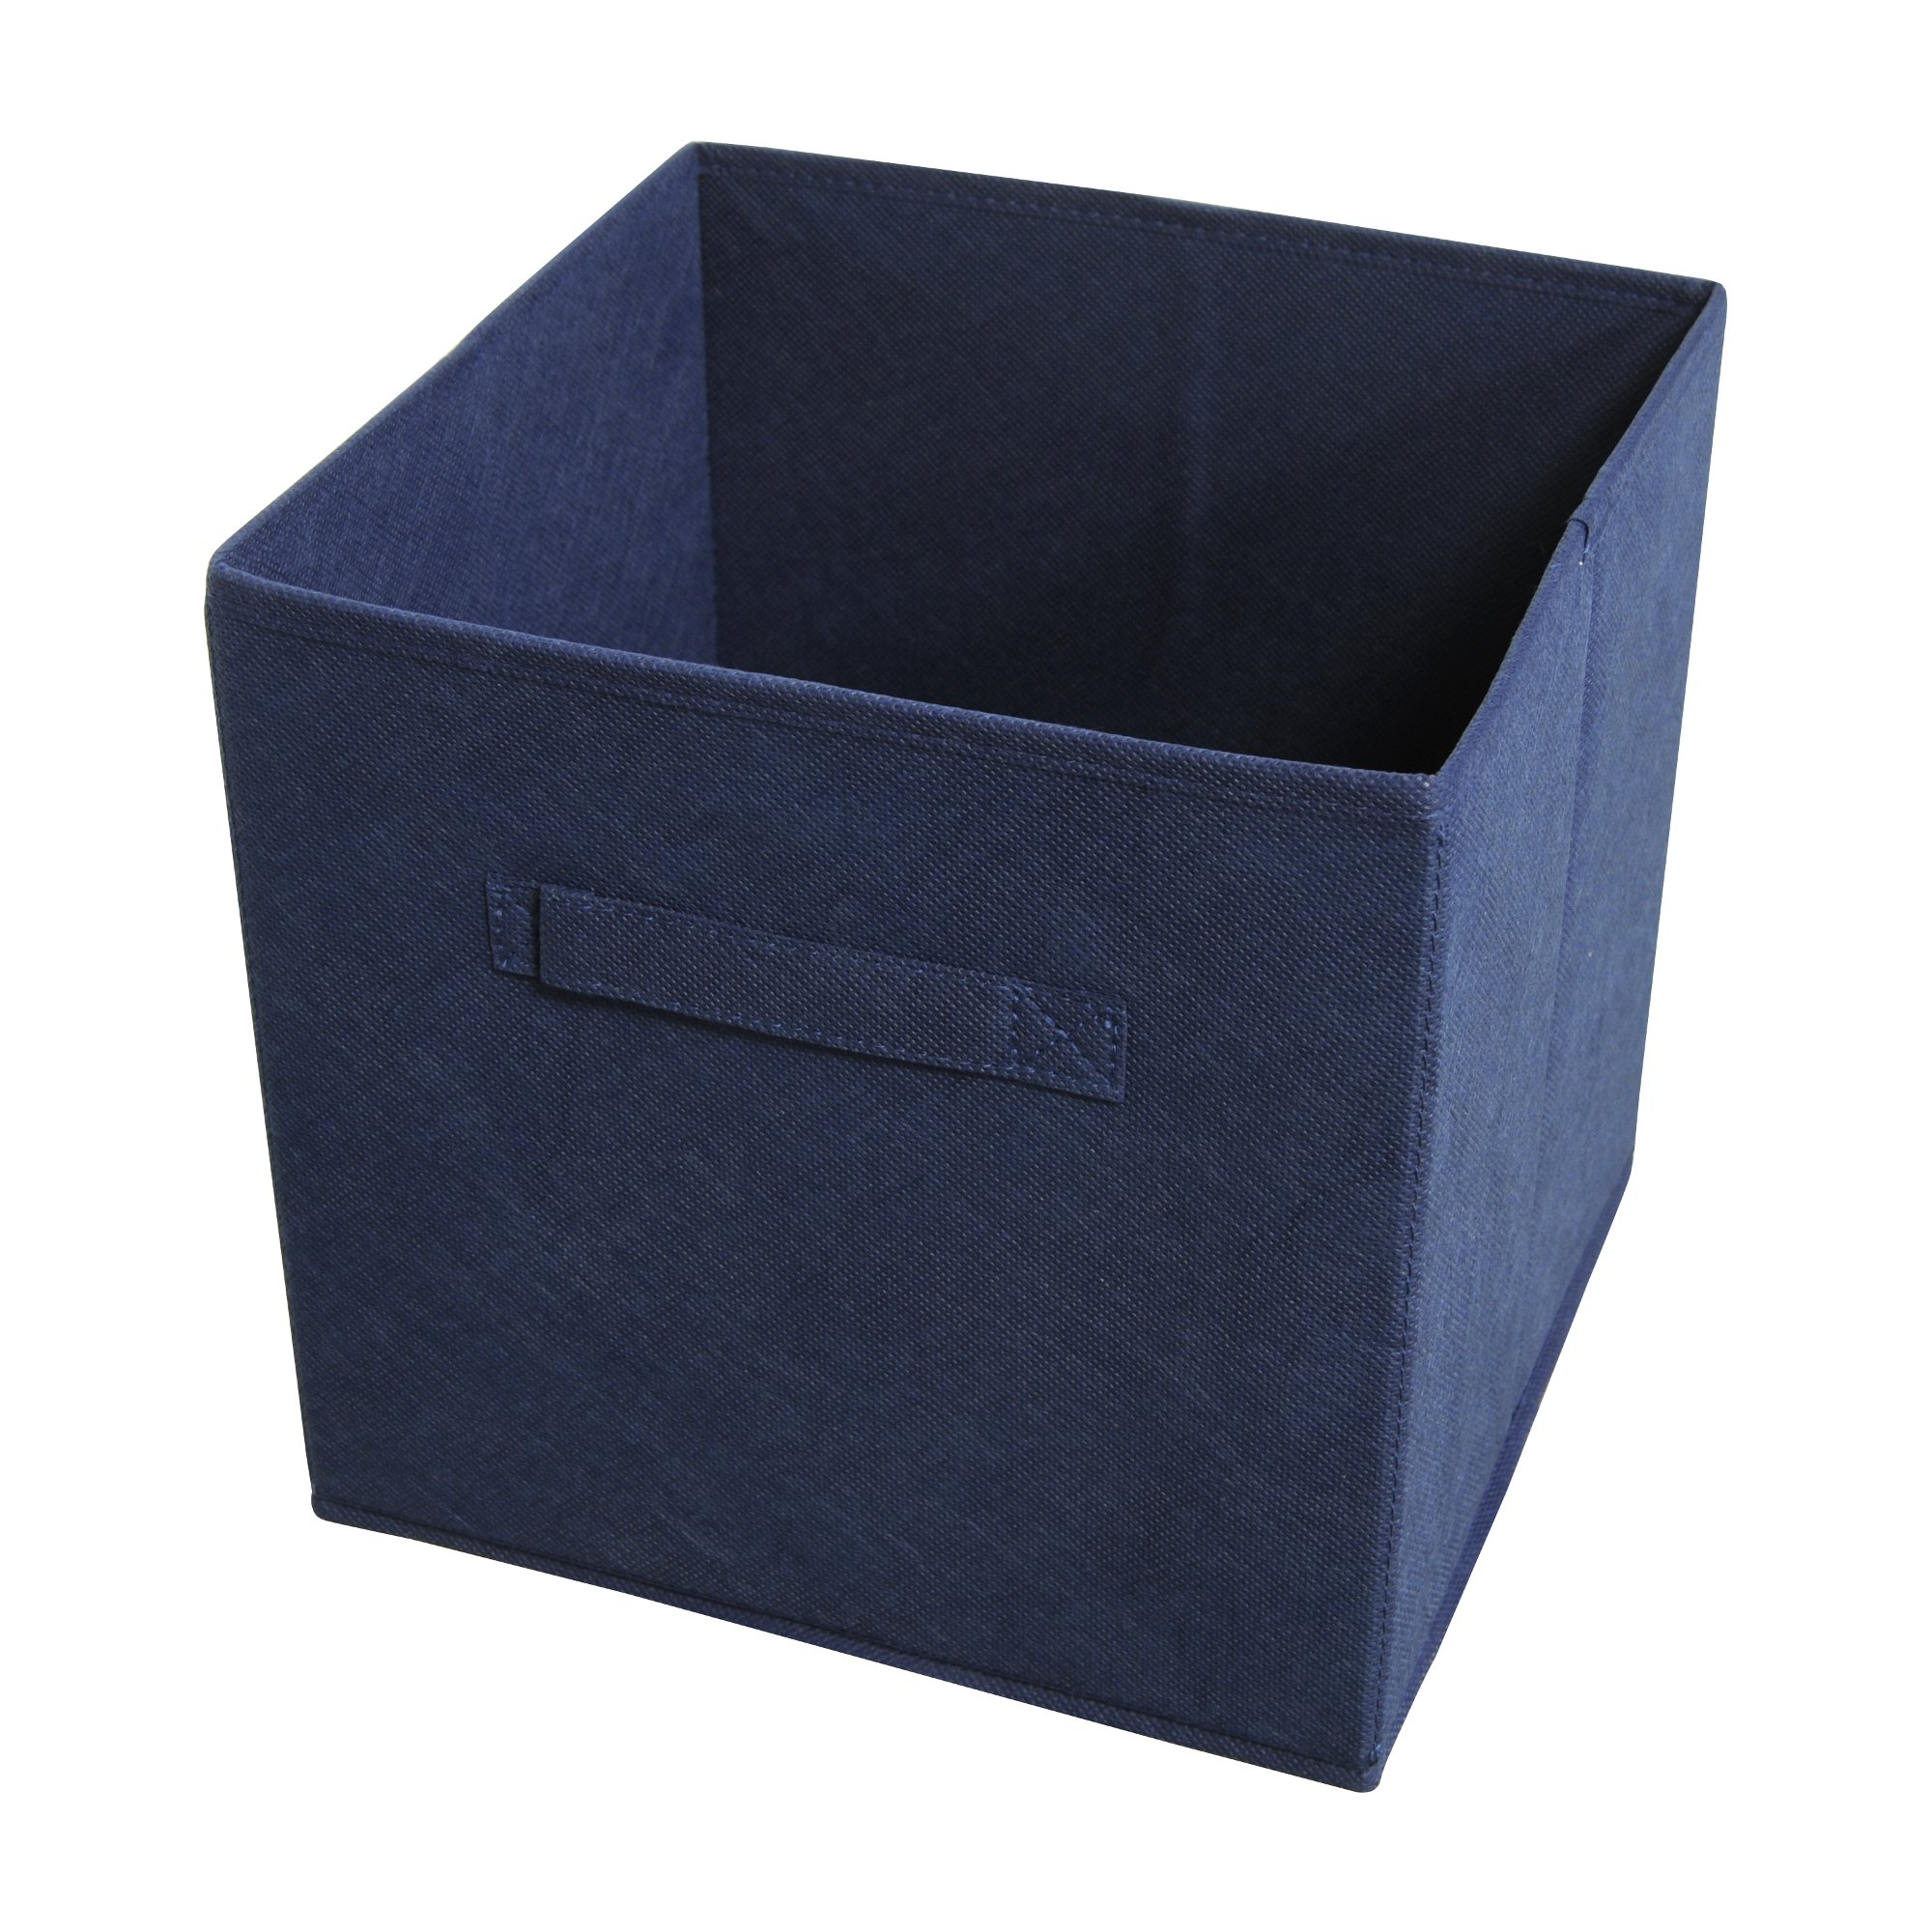 Achim Home Furnishings STRGBNNY04 Collapsible Storage Bins, Set of 4,Navy